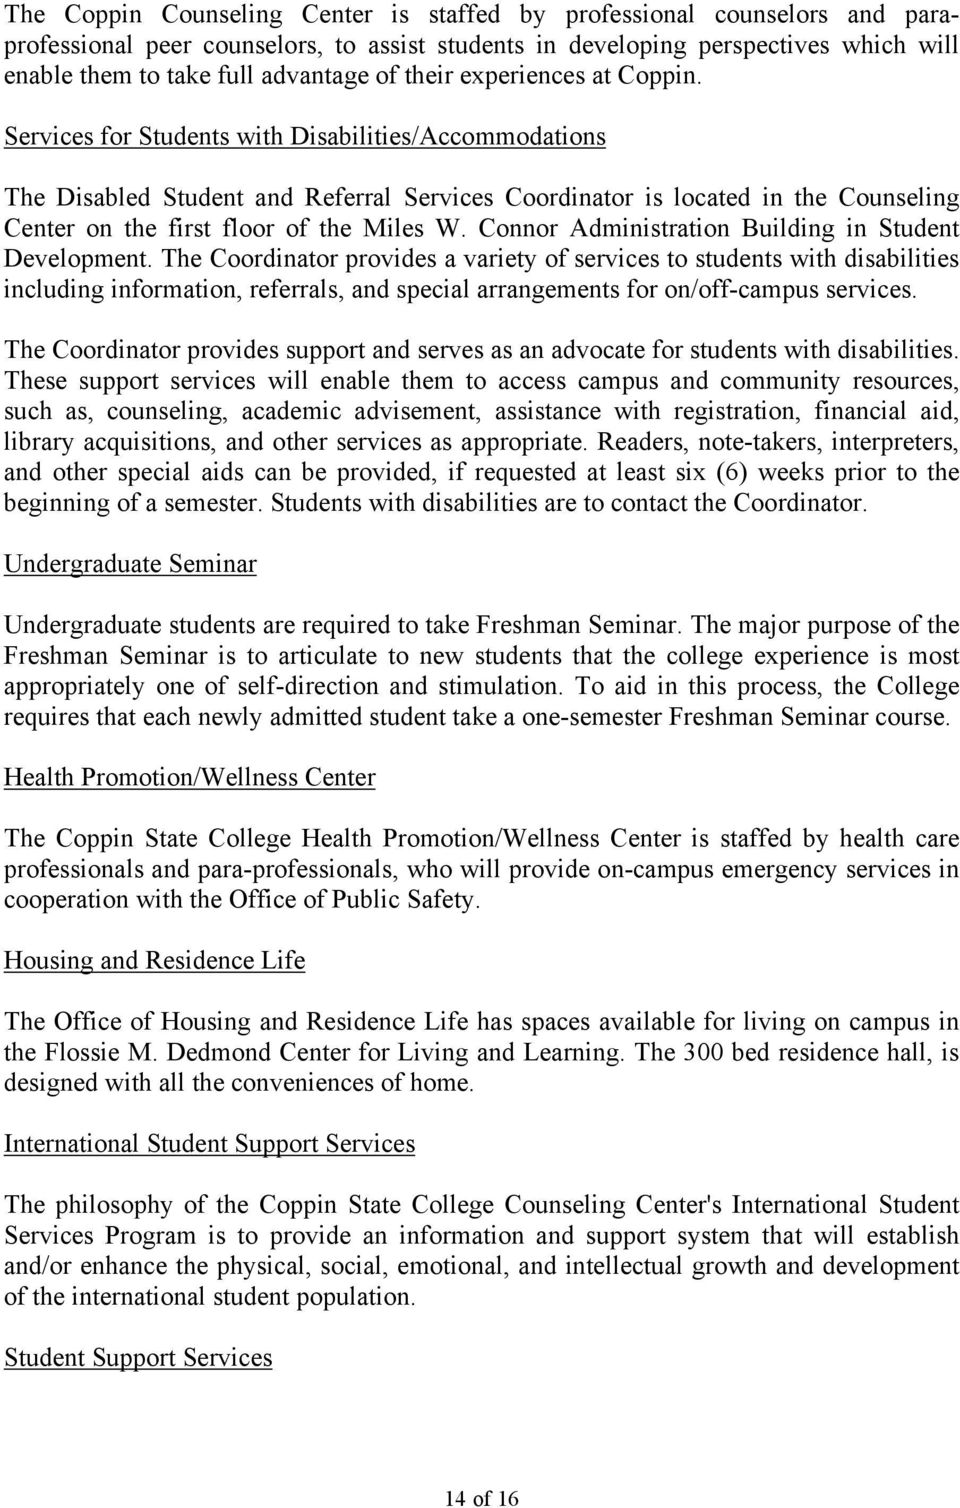 Services for Students with Disabilities/Accommodations The Disabled Student and Referral Services Coordinator is located in the Counseling Center on the first floor of the Miles W.